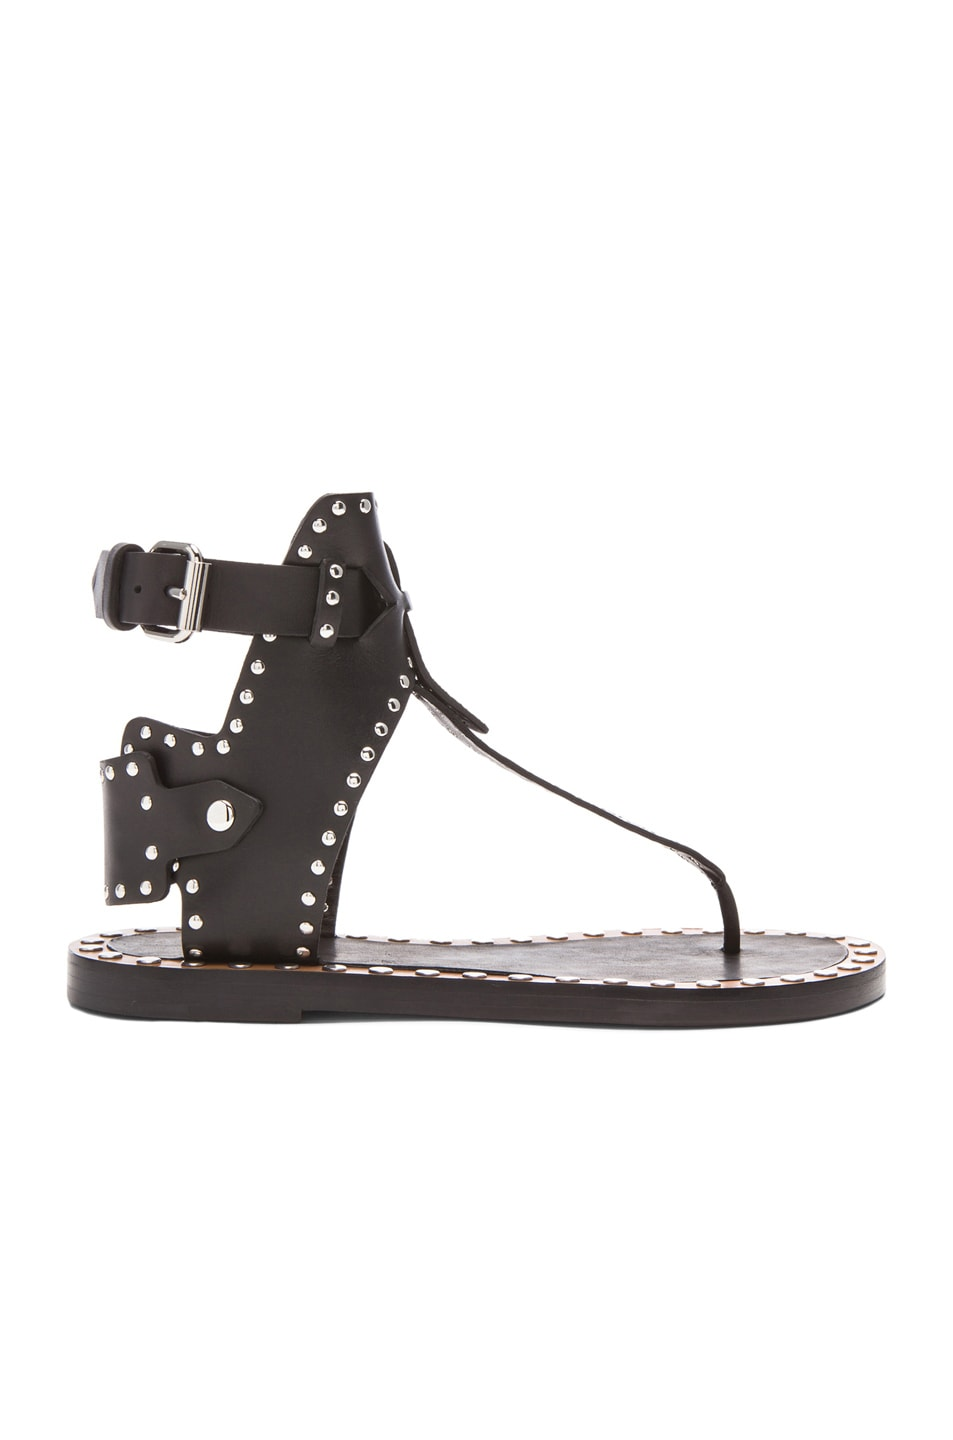 059e1f0e7 Image 1 of Isabel Marant Johanna Pomponius Calfskin Leather Sandals in Black